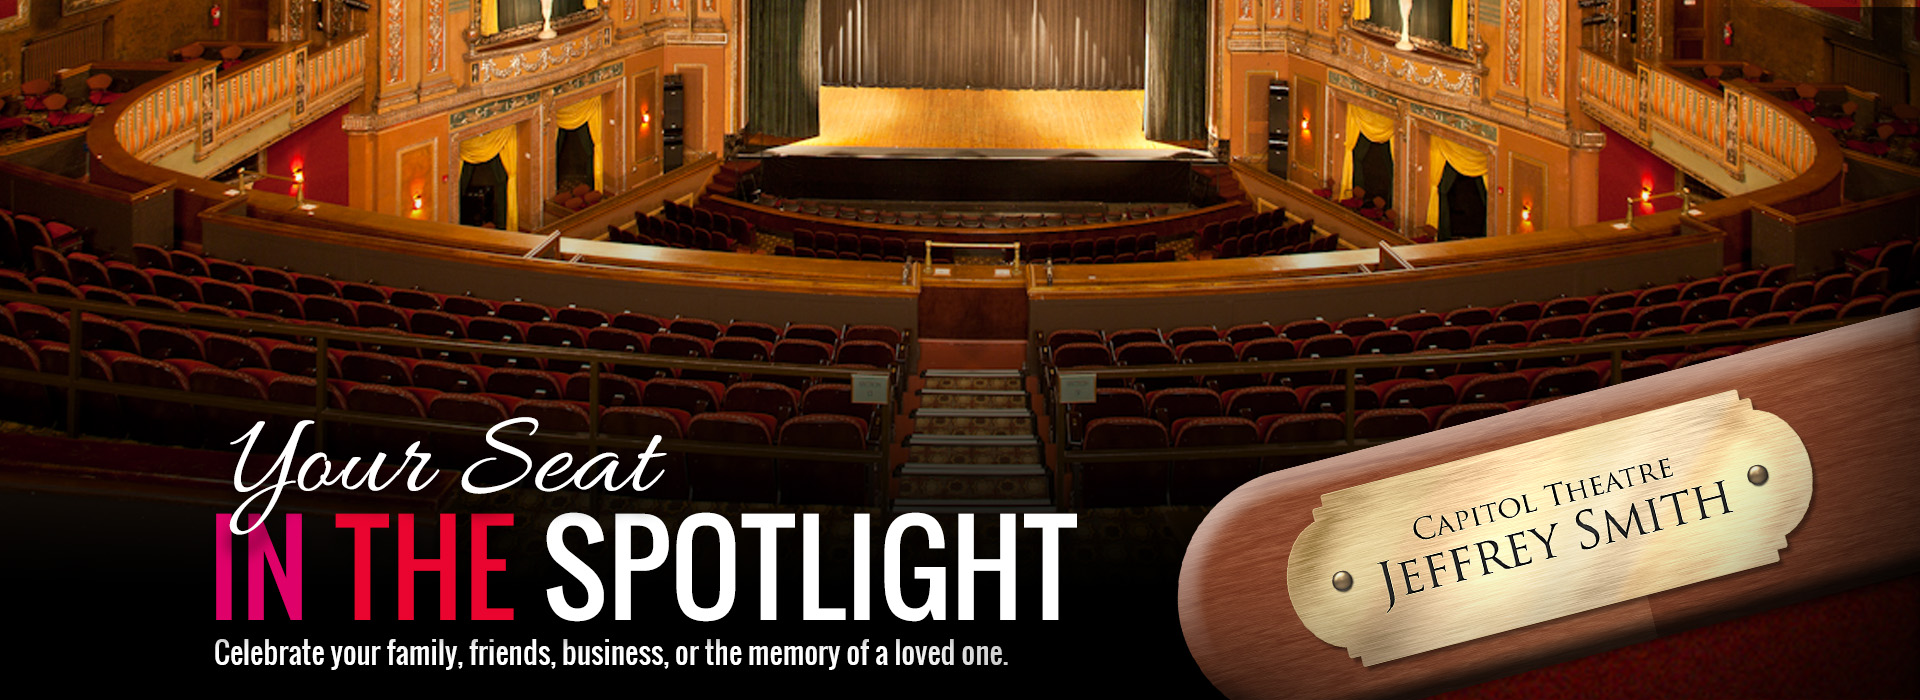 Your Seat In The Spotlight